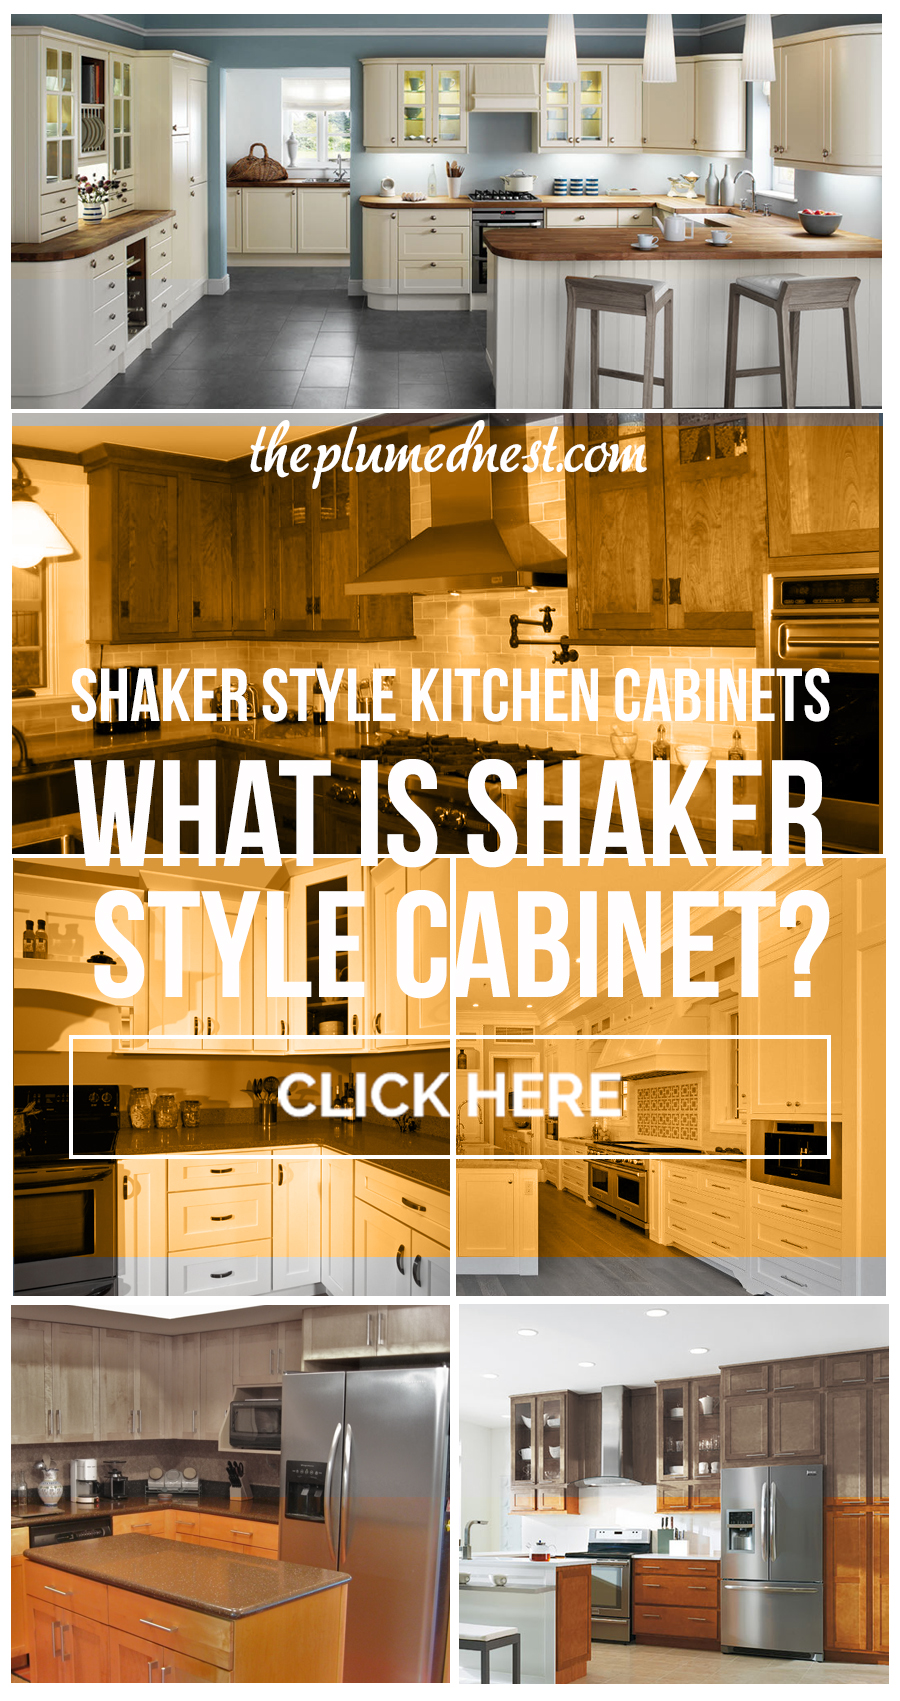 shaker cabinets definition